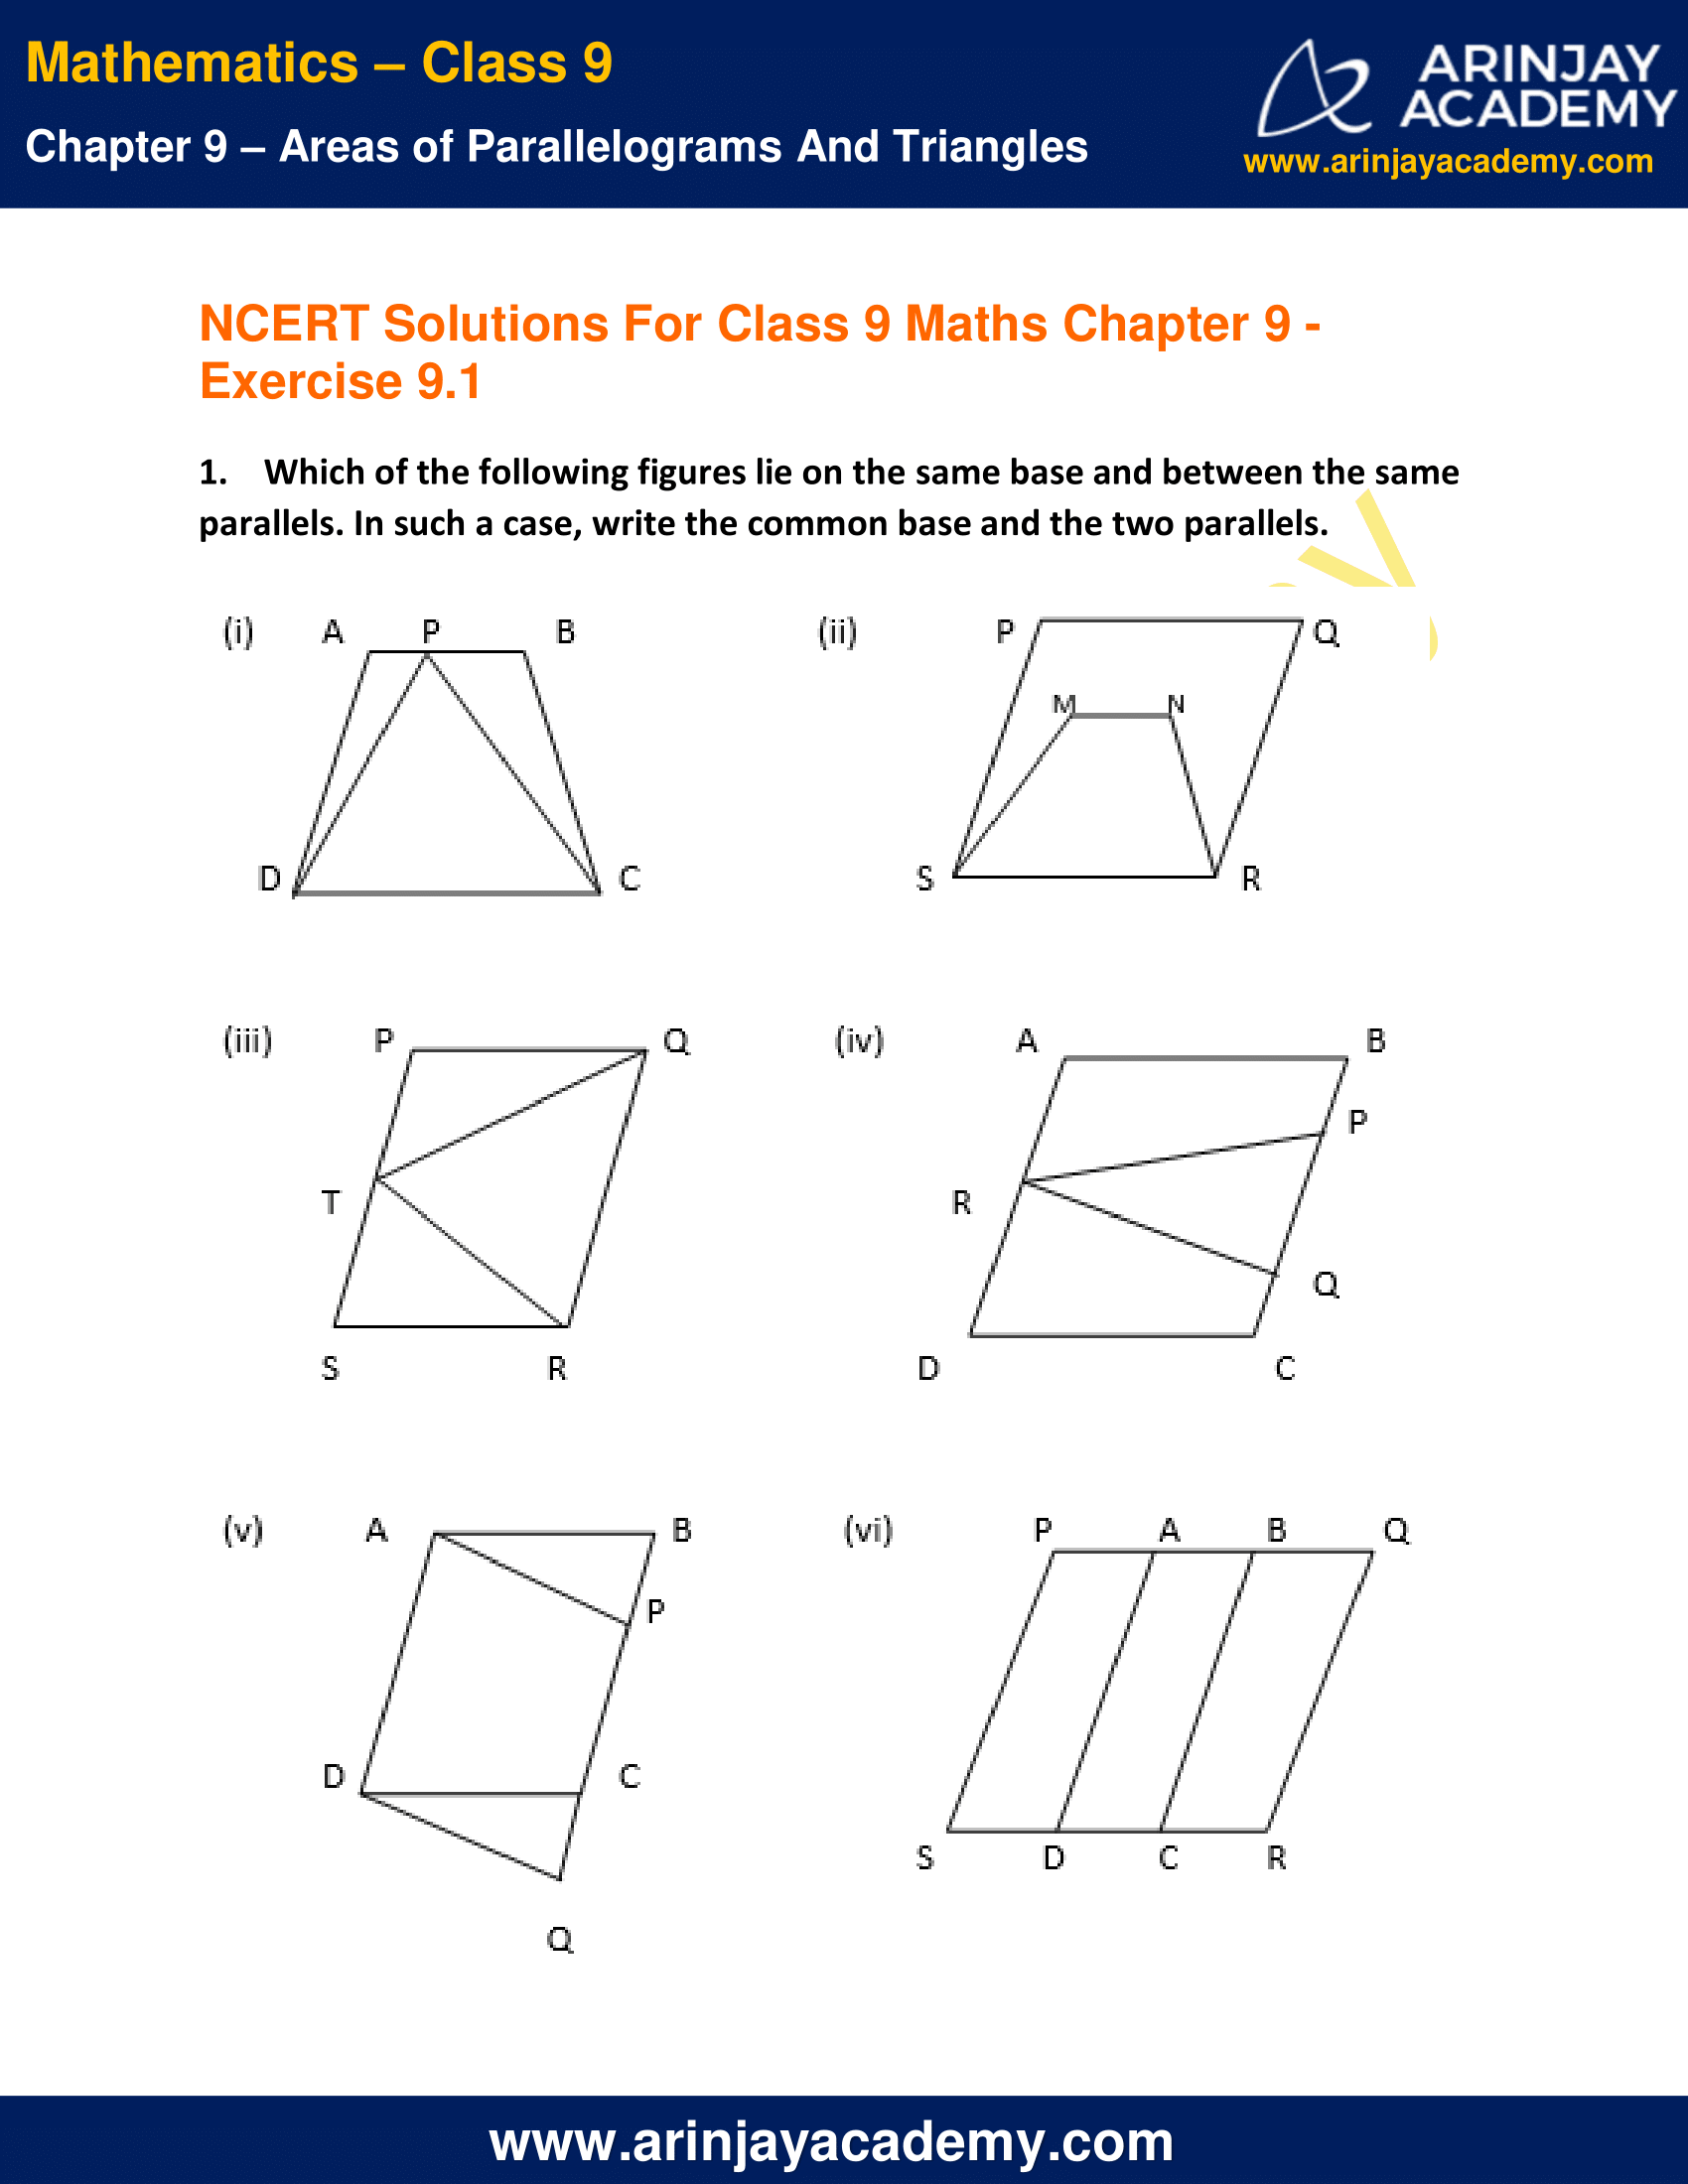 NCERT Solutions for Class 9 Maths Chapter 9 Exercise 9.1 image 1